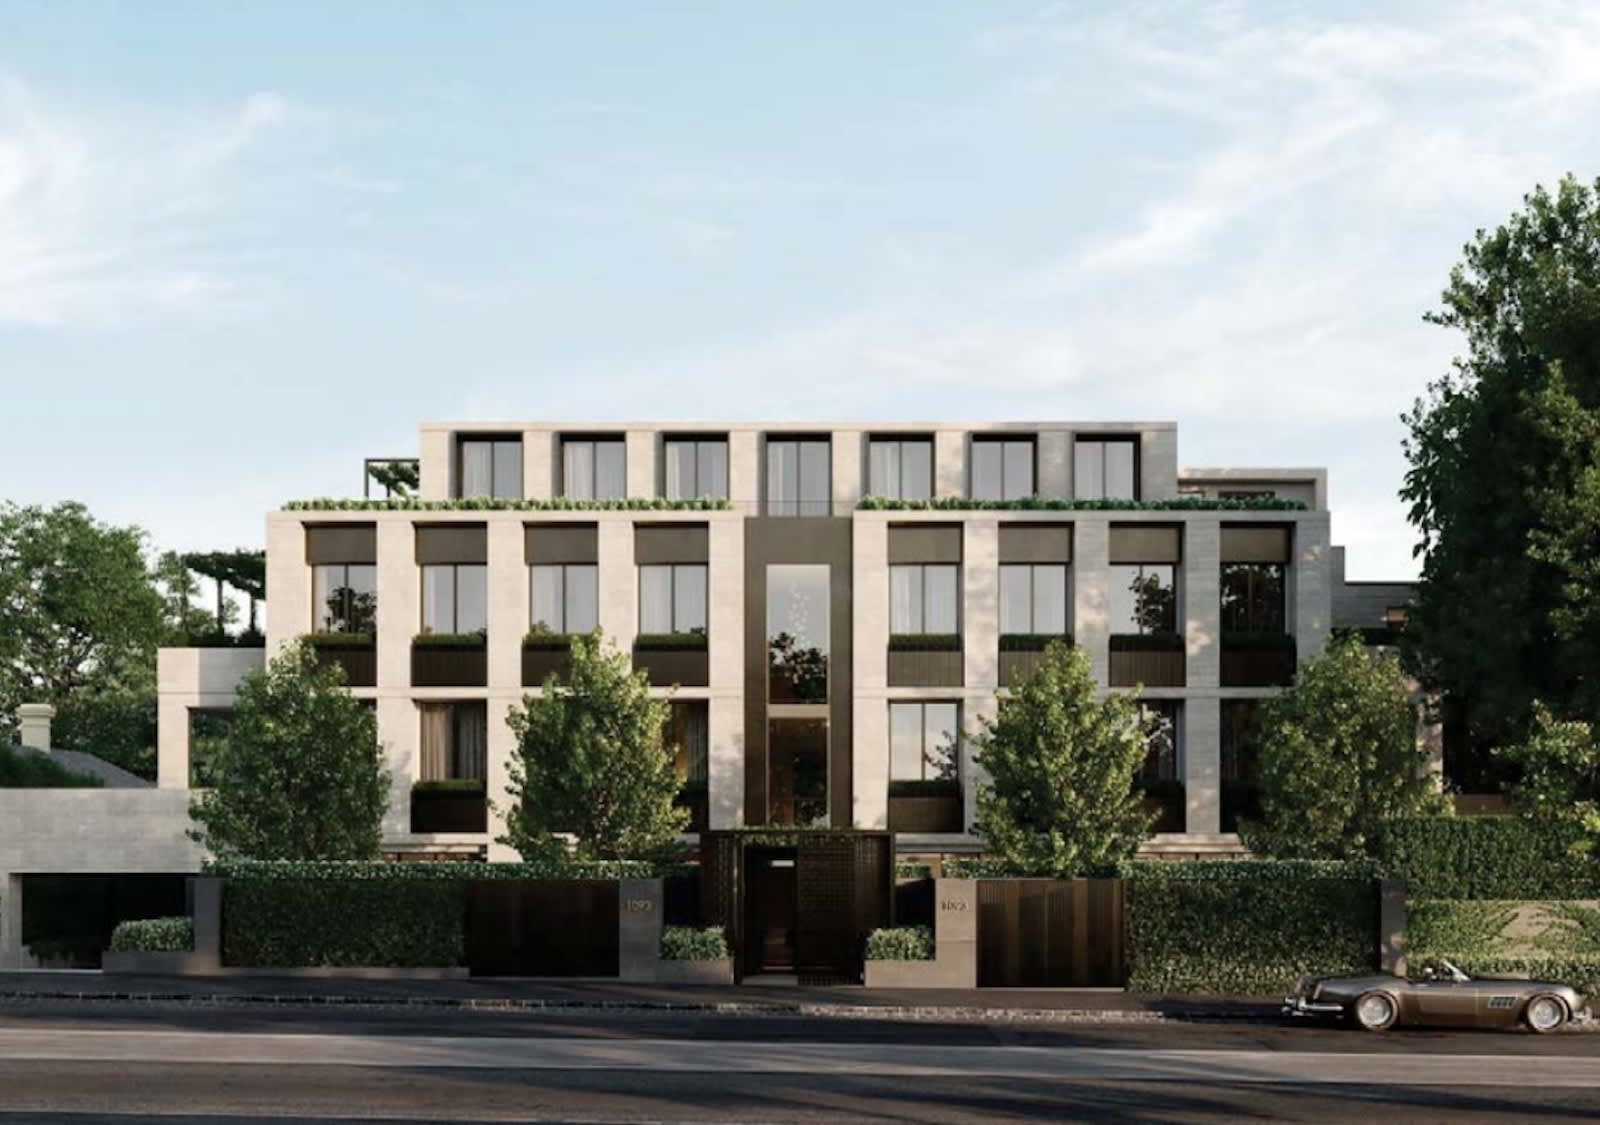 A new $22 million apartment development is coming to Toorak, find out who's behind it